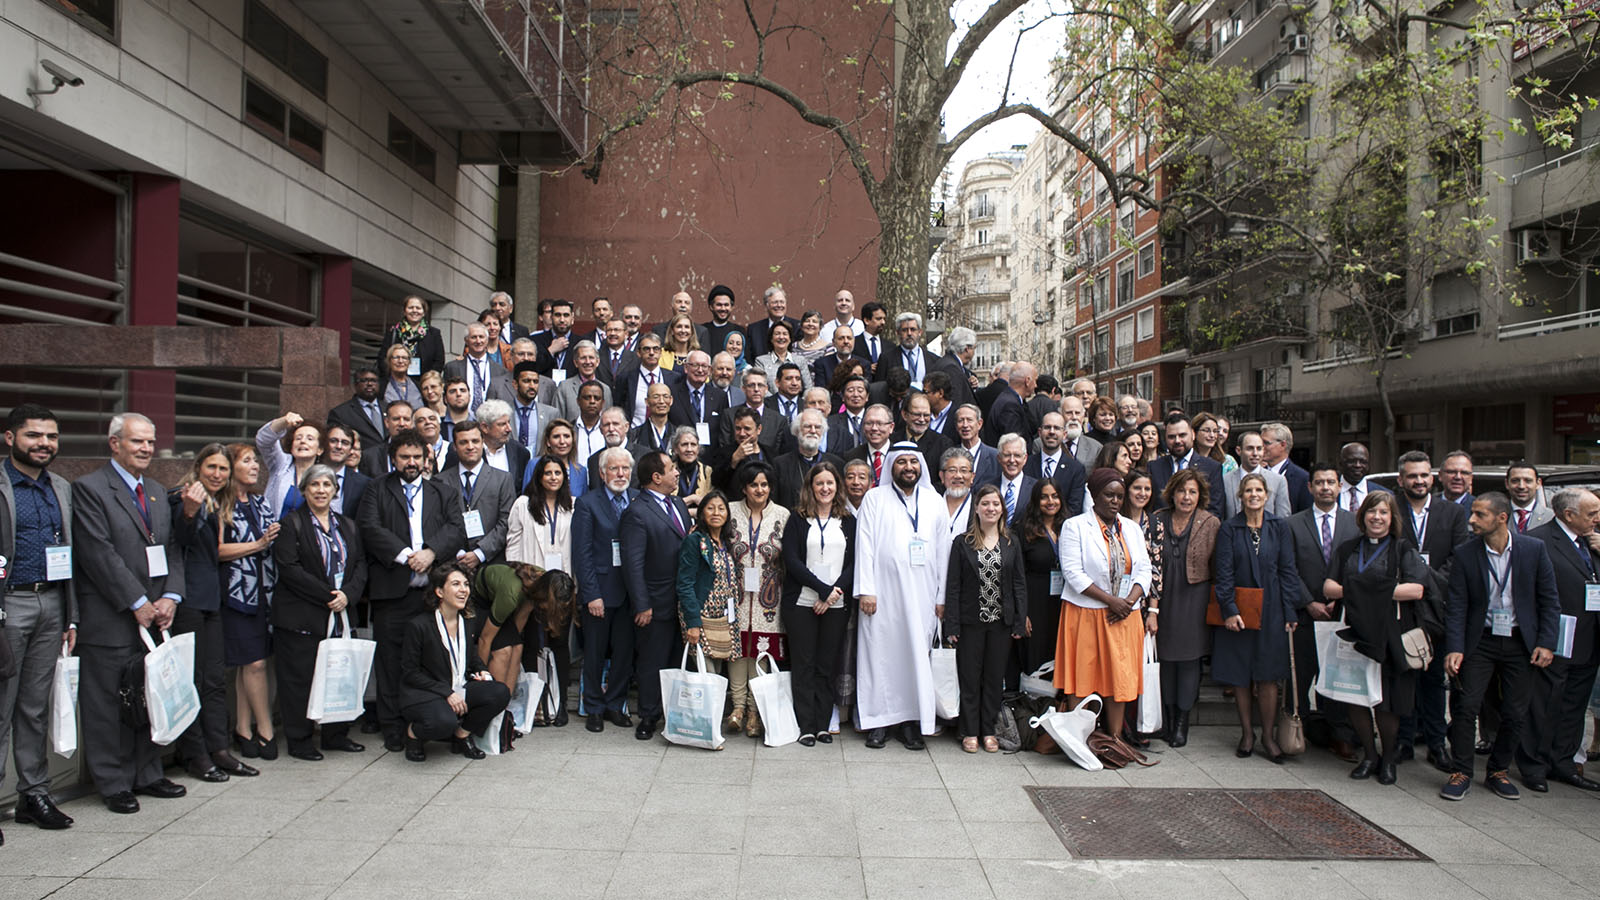 The participants of the 2018 Interfaith Forum in Argentina pose together.